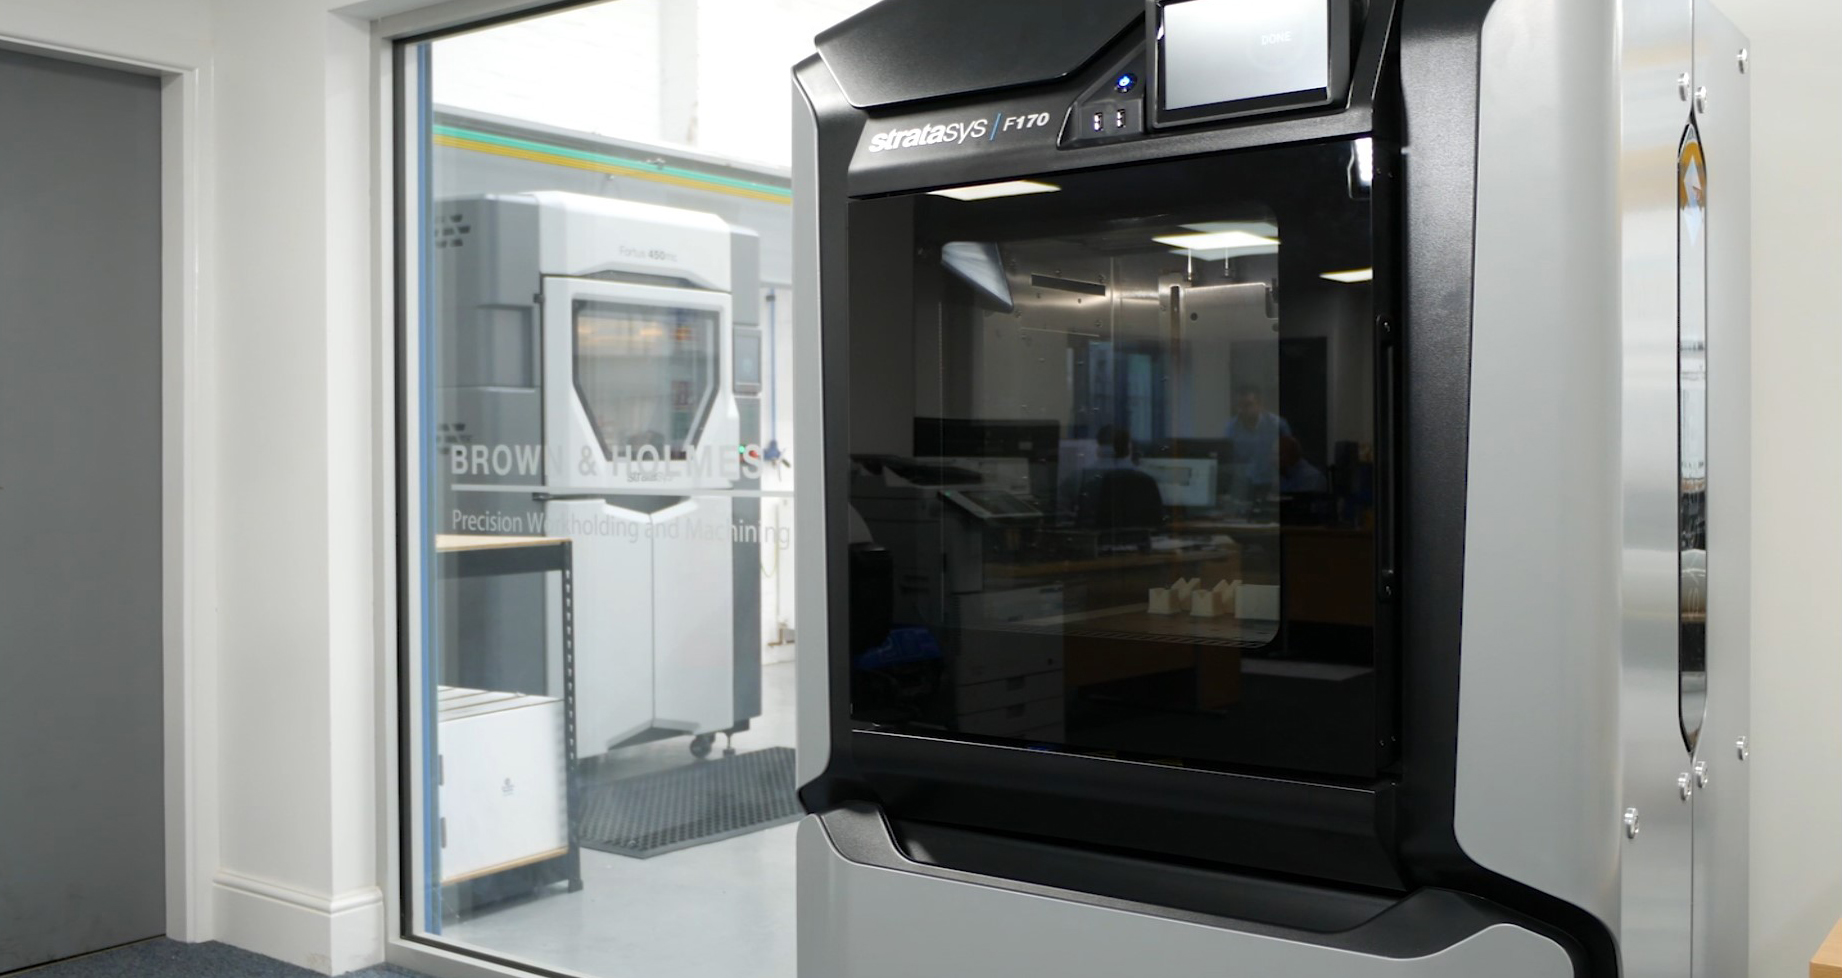 The Stratasys F170 and Fortus 450mc installed on the shop floor at Brown & Holmes. Photo via SYS Systems.